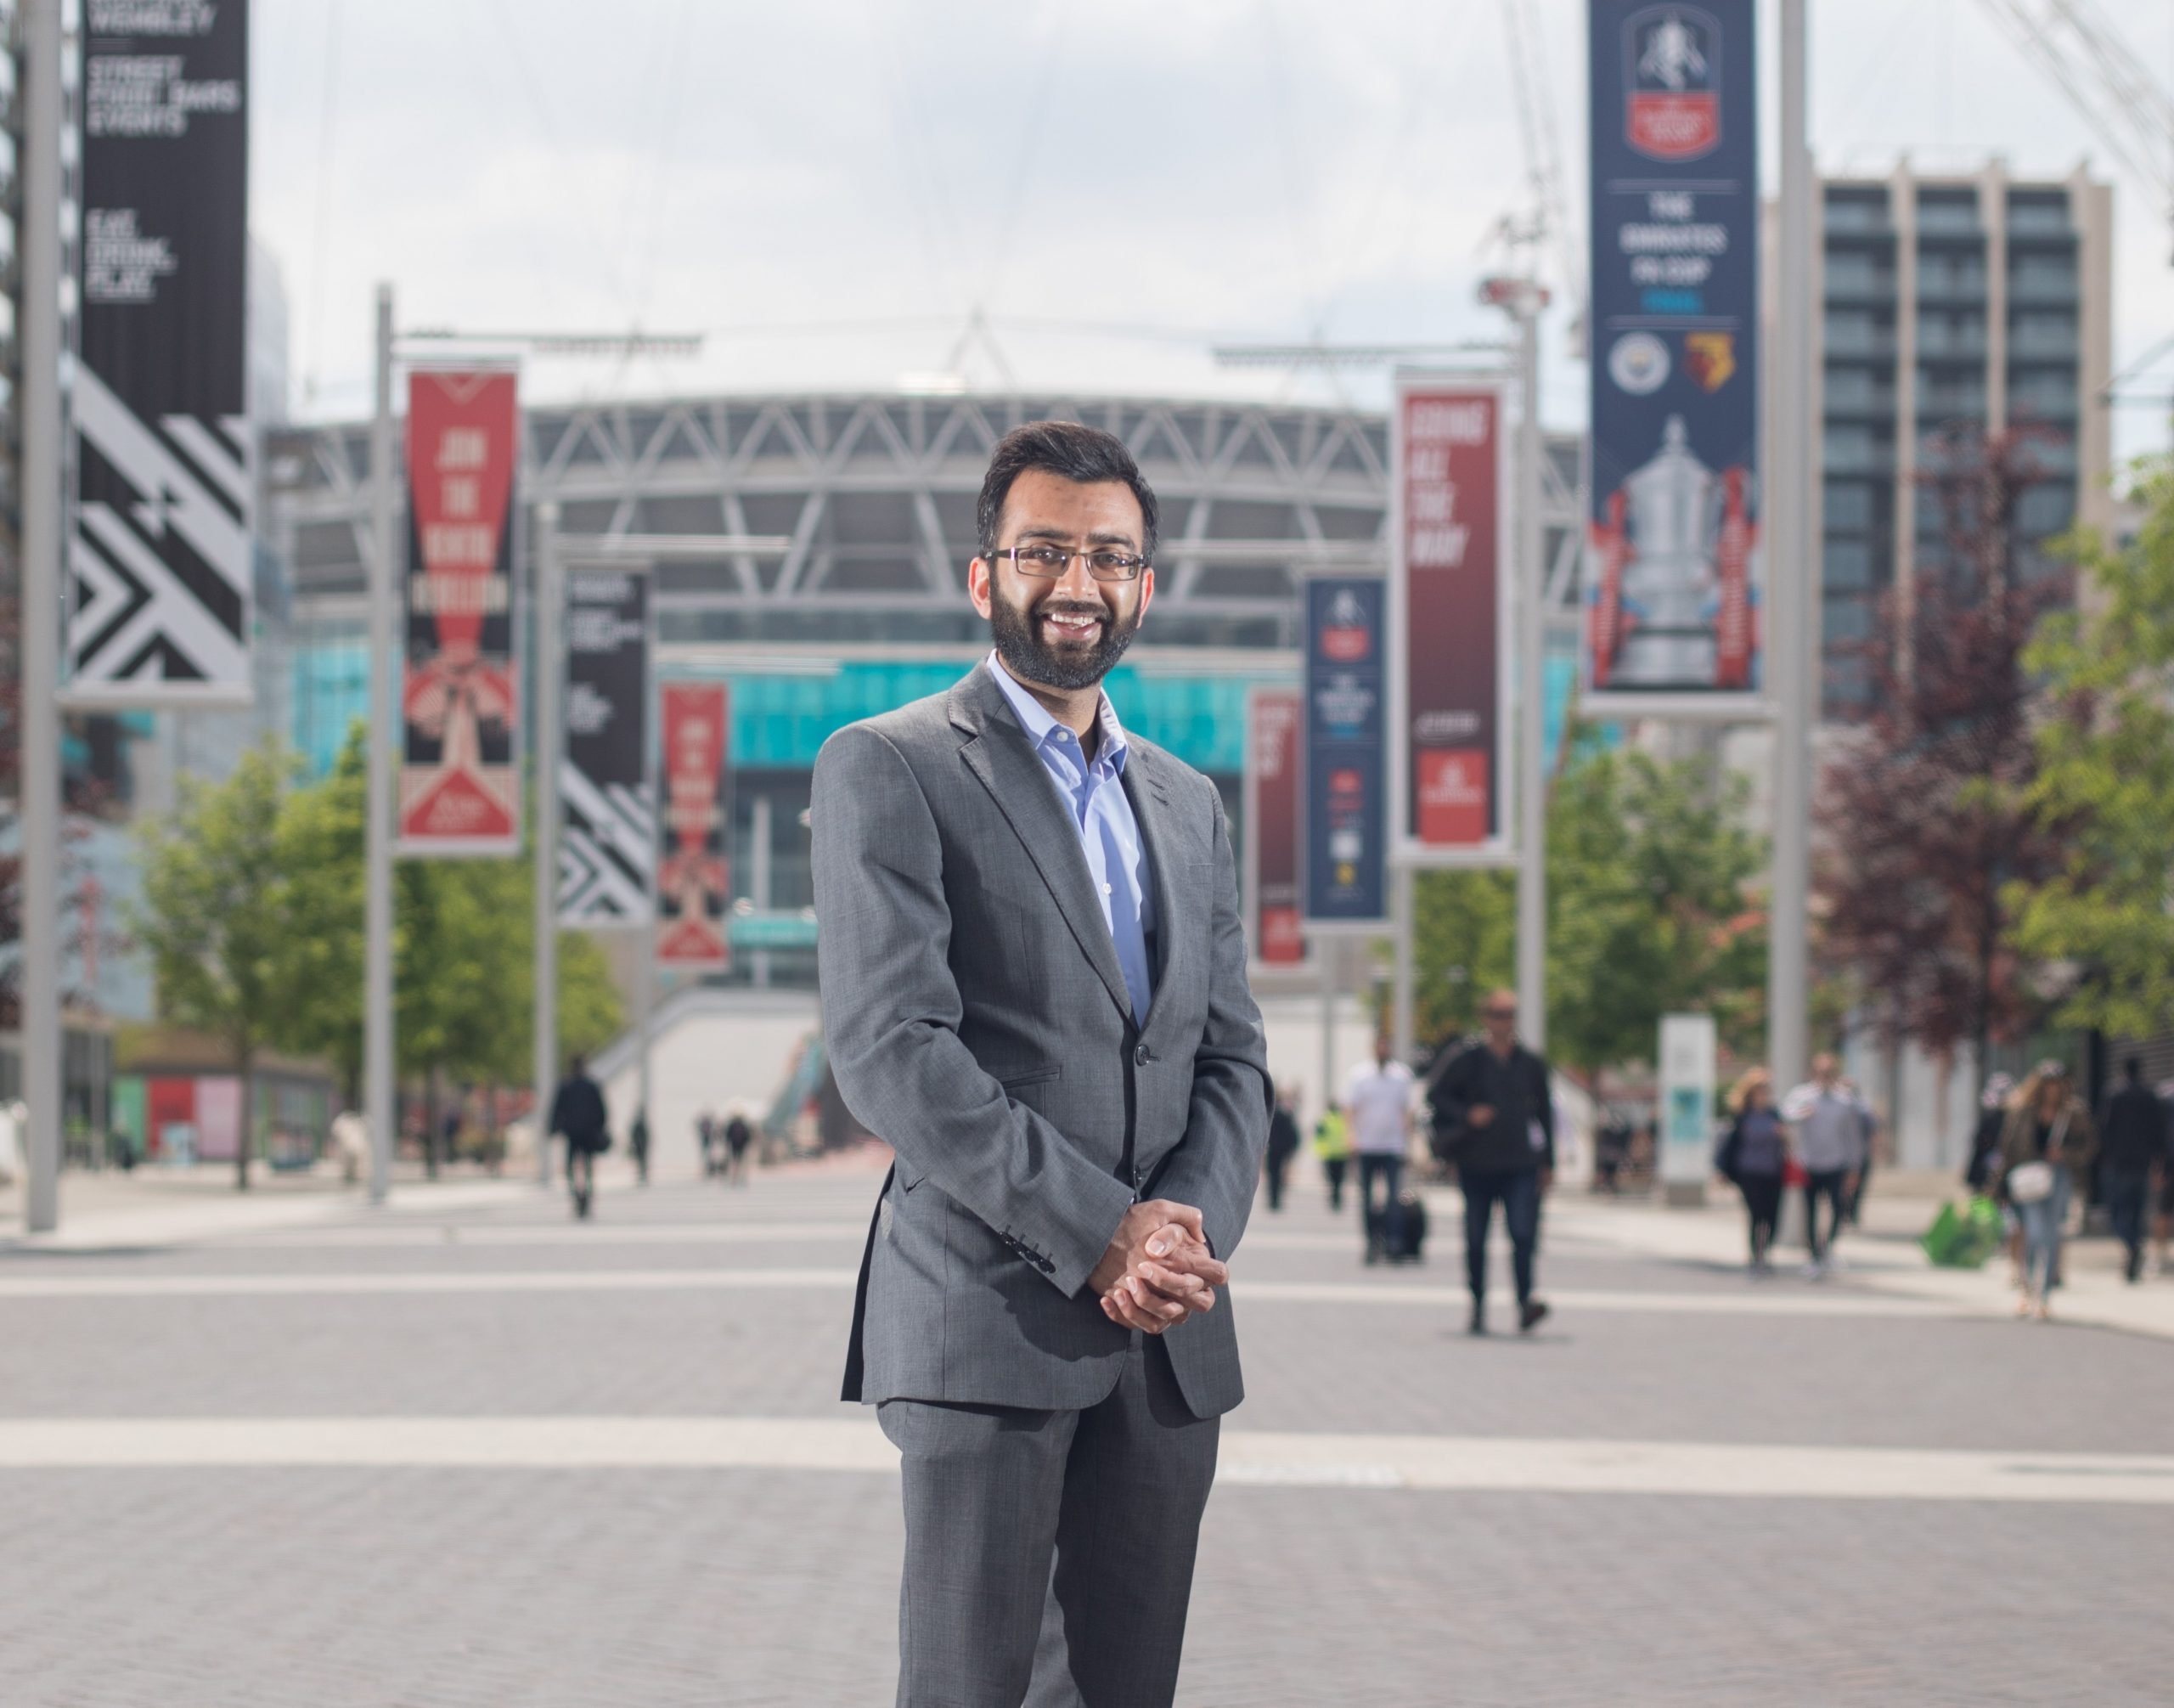 Krupesh Hirani has been selected as the candidate in Brent and Harrow for the London elections in May